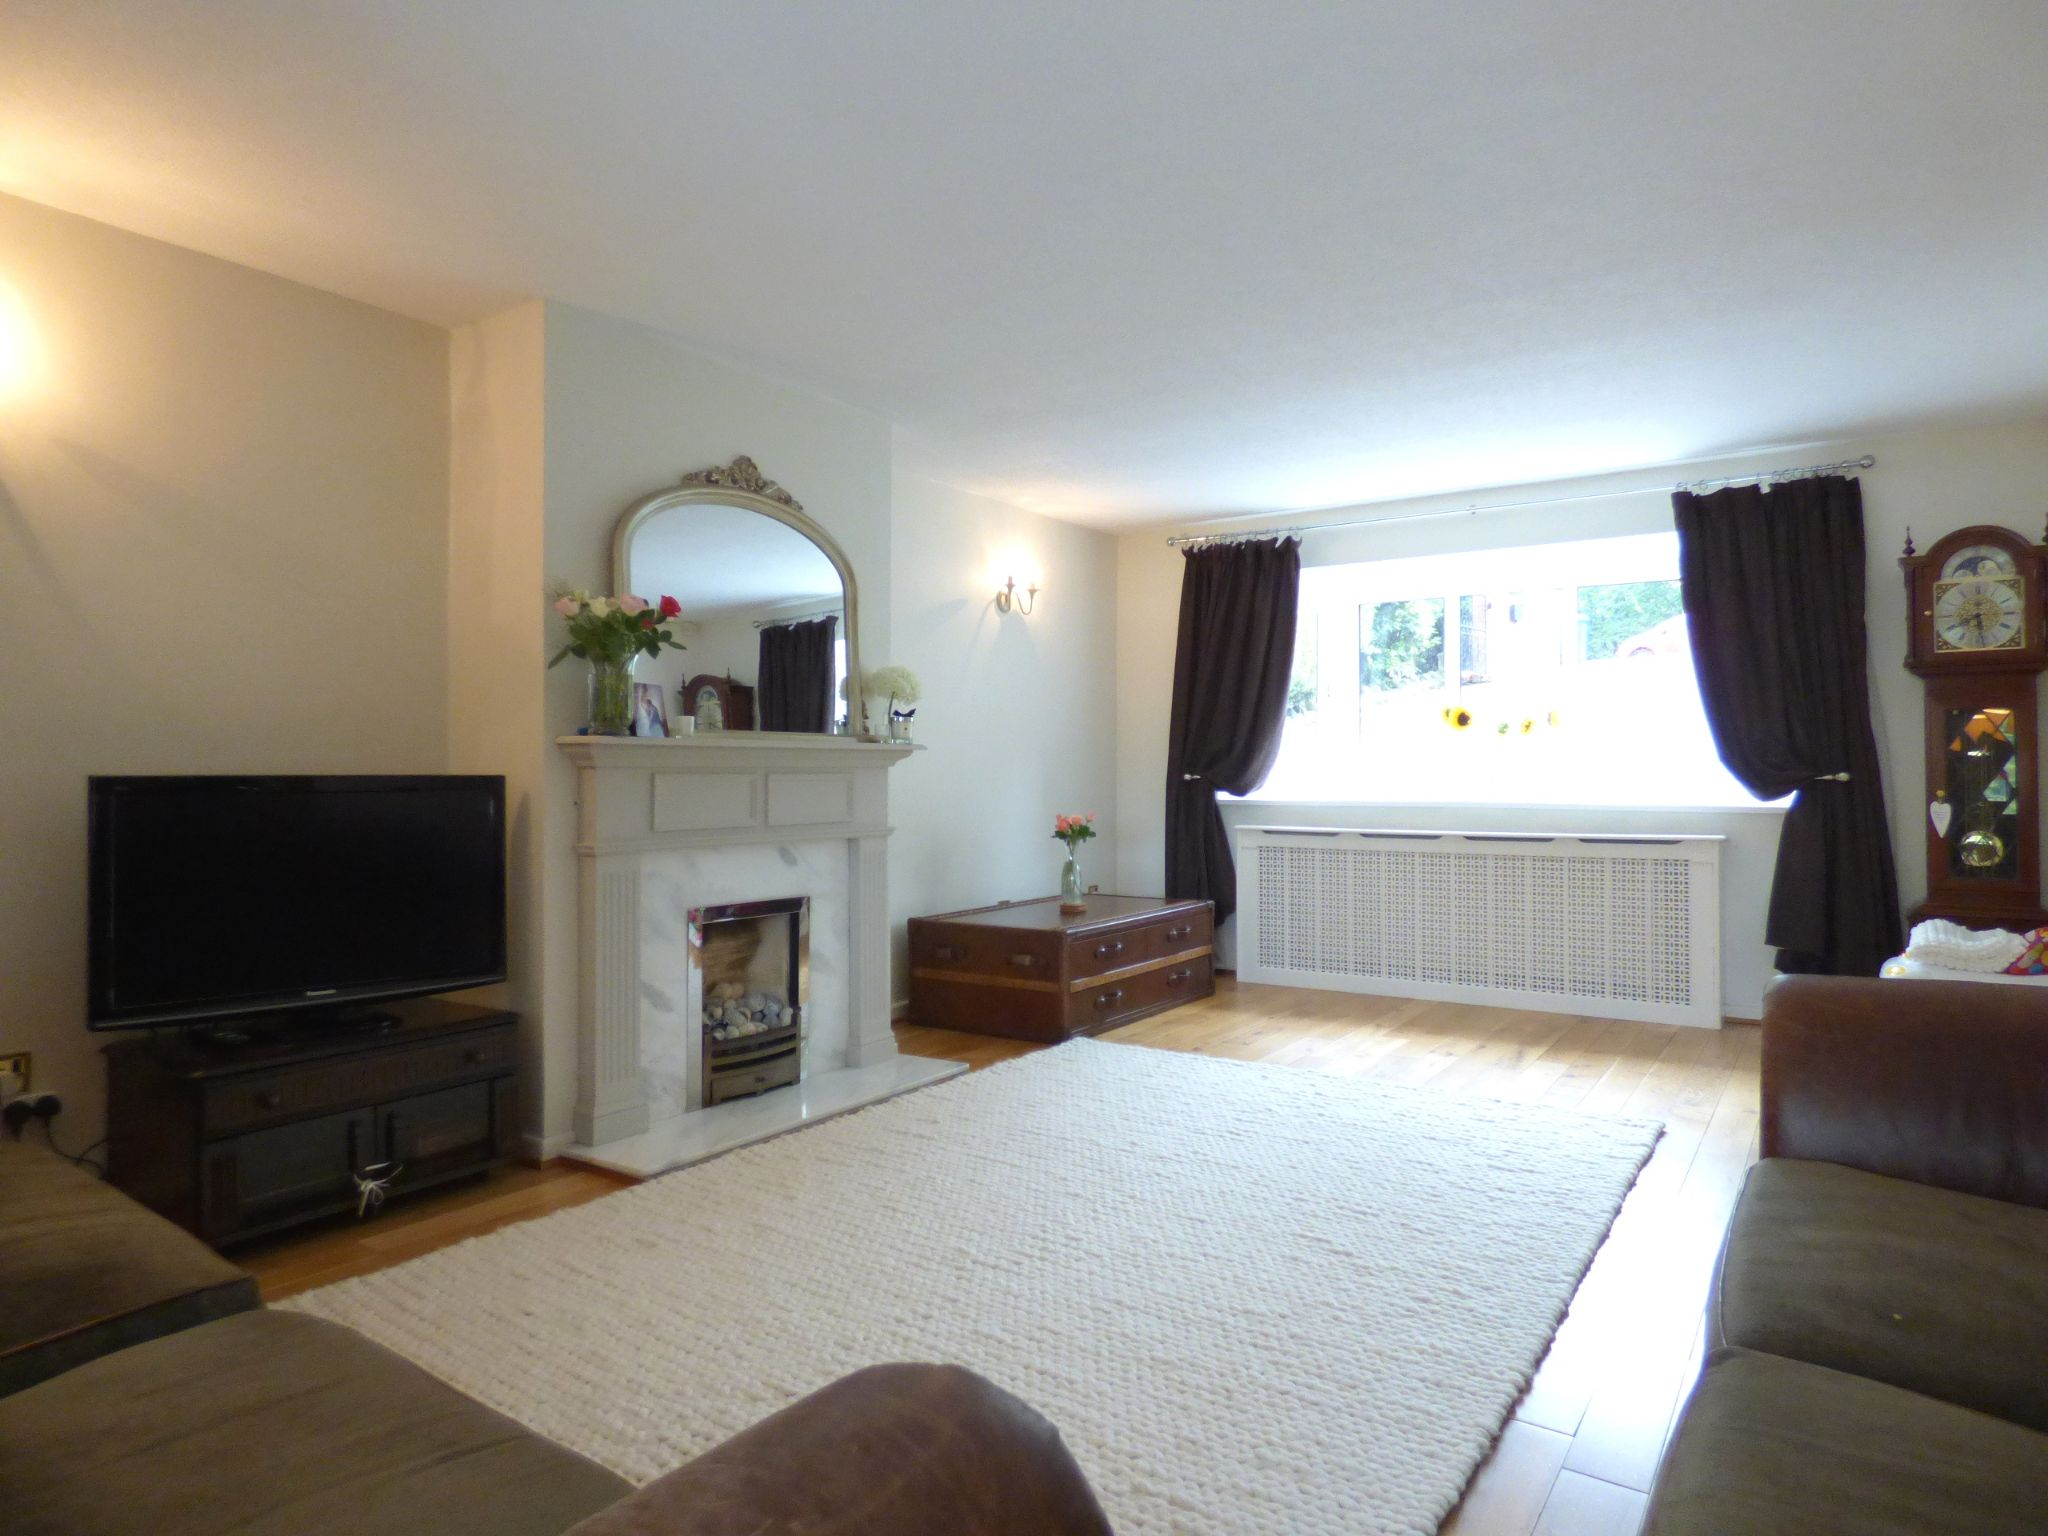 4 Bedroom Detached House For Sale - Photograph 21